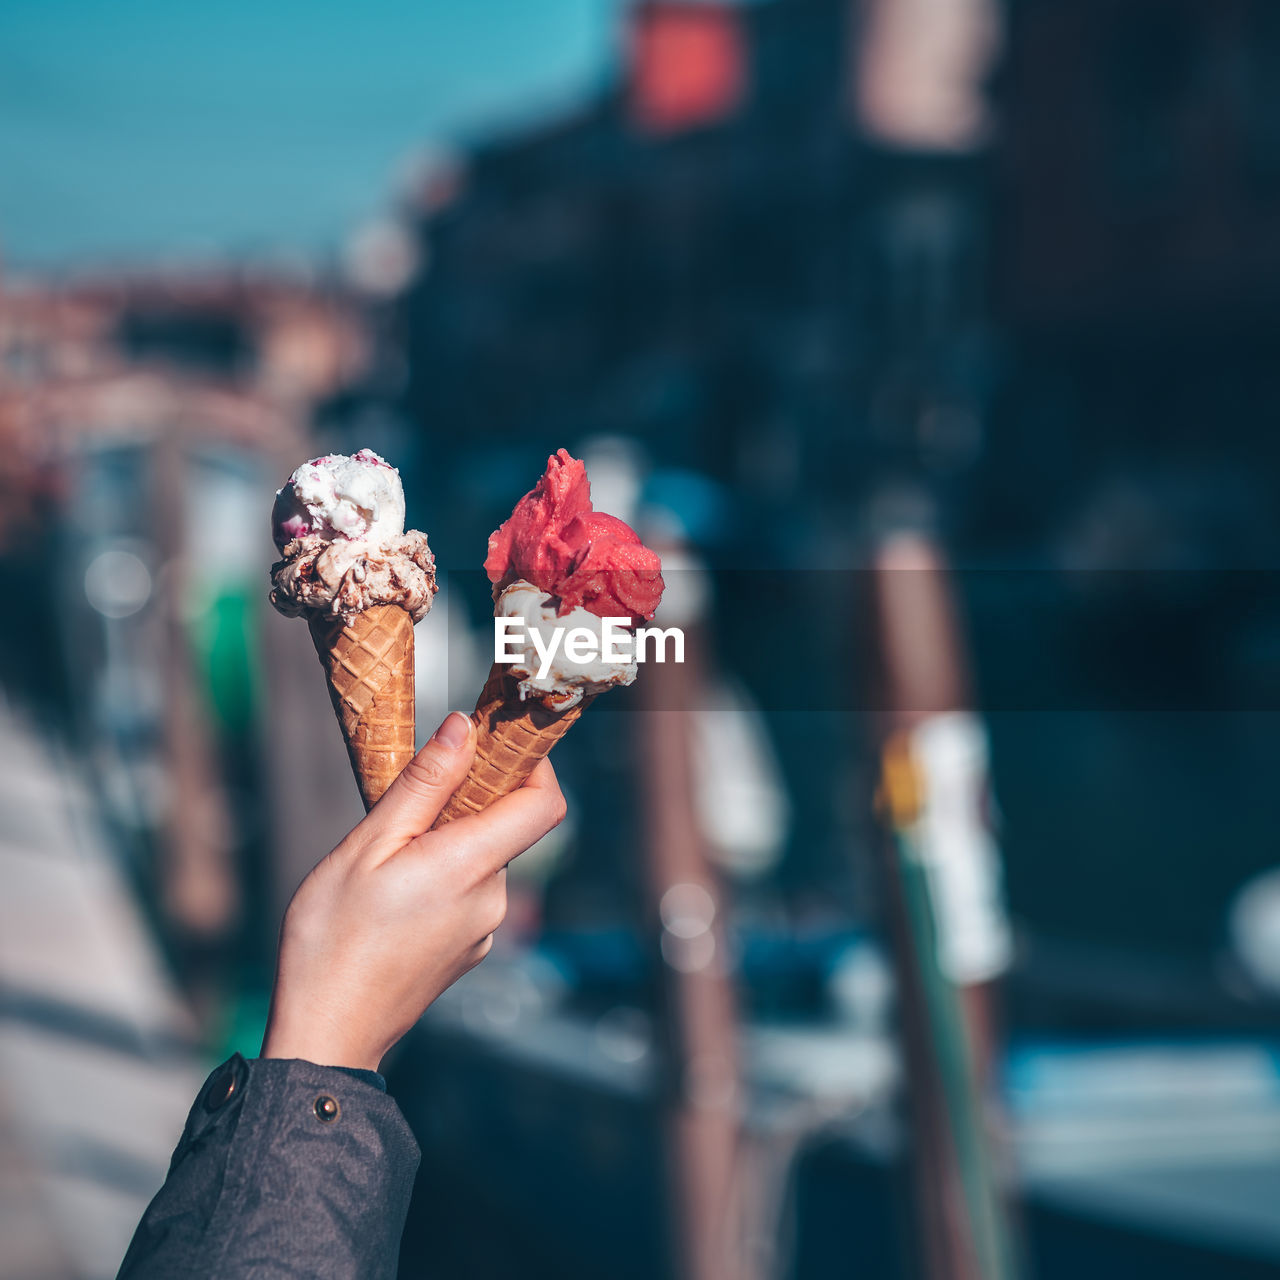 Cropped hand holding ice cream cone in city